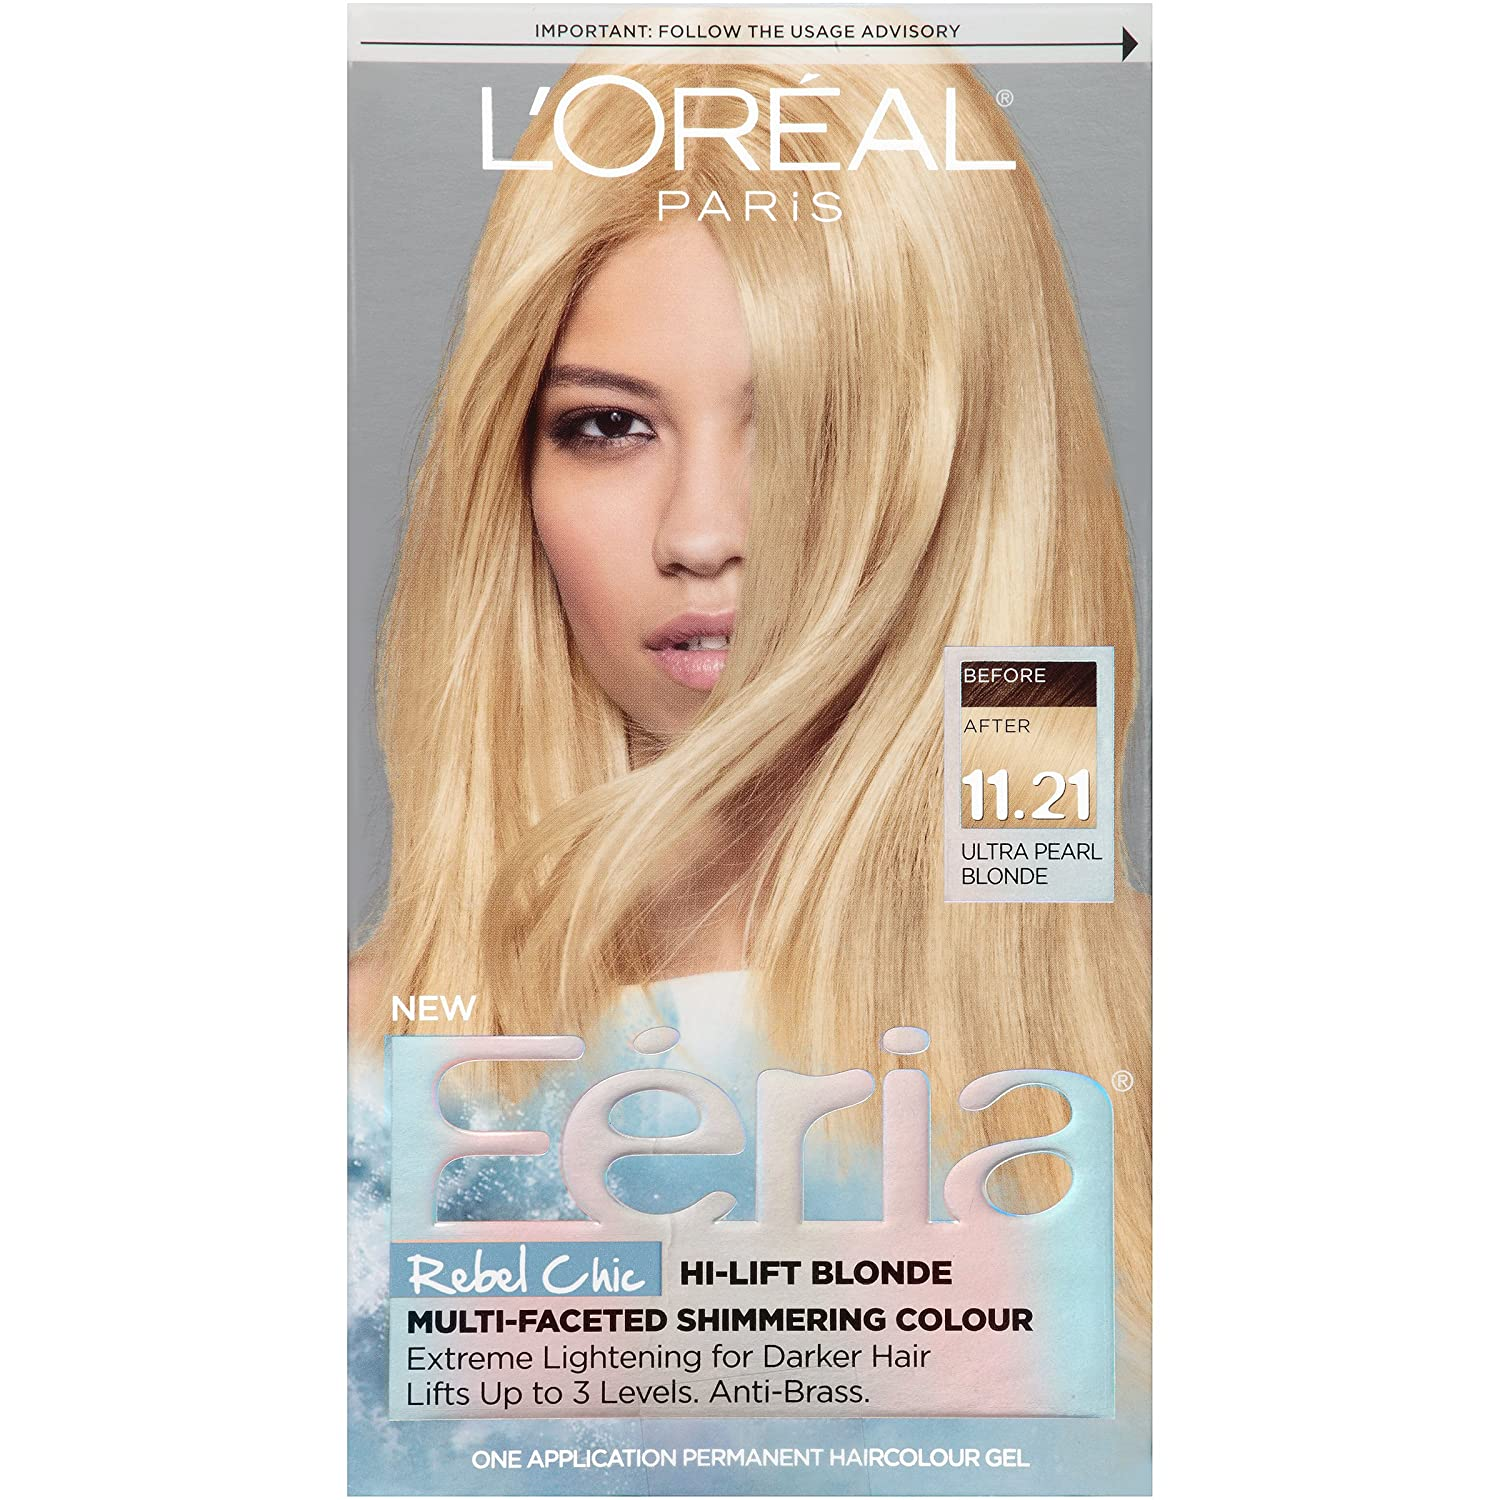 The look at home using l oreal paris feria smokey pastels in p2 smokey - Buy L Oreal Paris Hair Color Feria Dye Black White Ultra Pearl Blonde 11 21 Online At Low Prices In India Amazon In